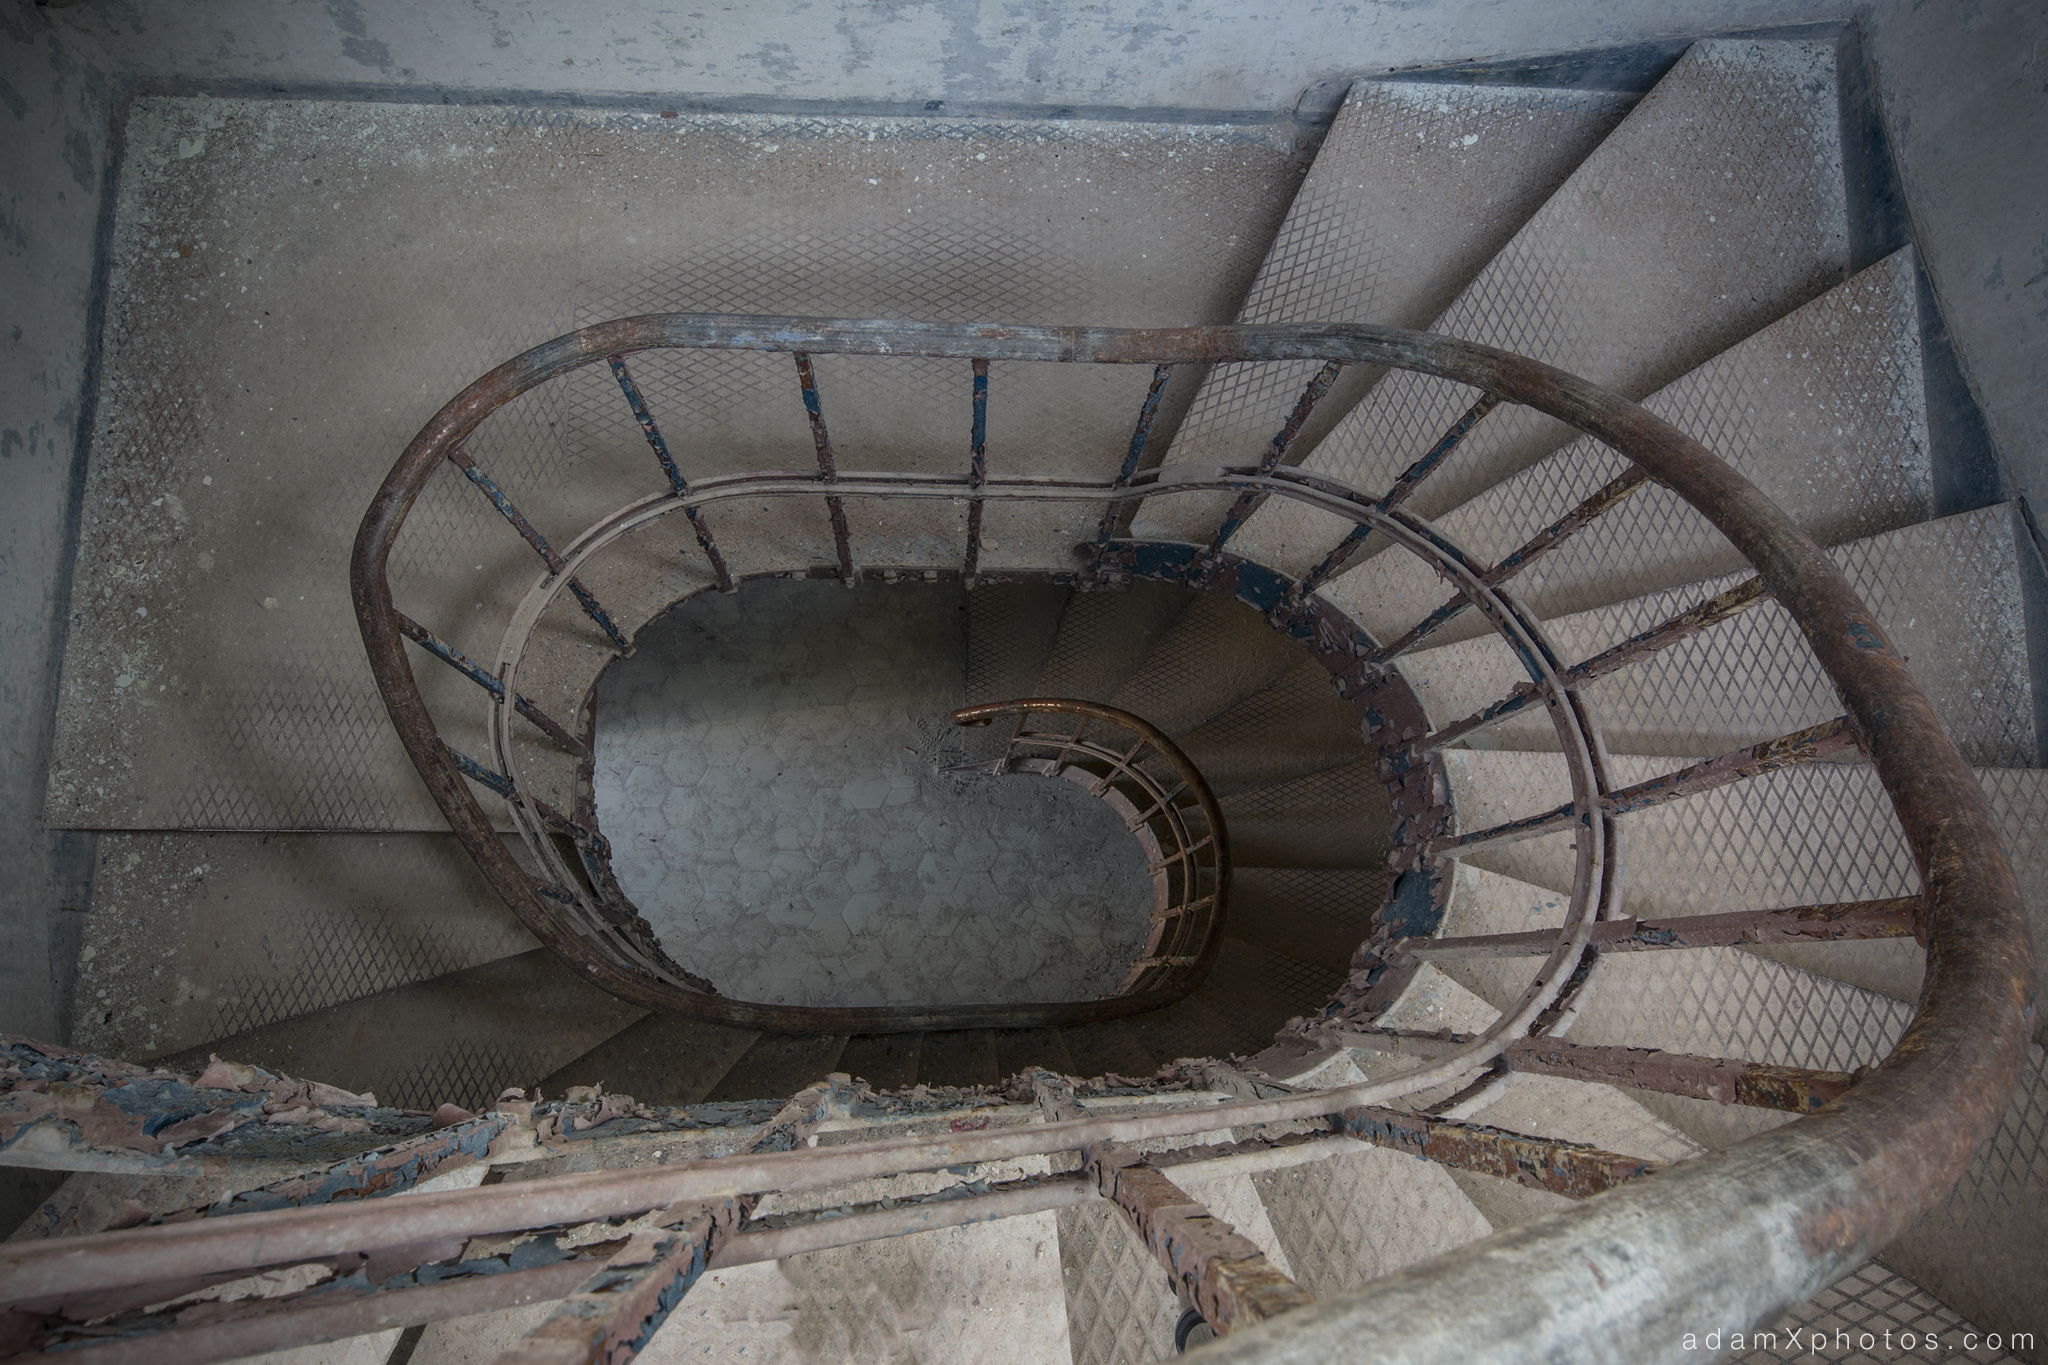 Adam X Urbex Beelitz Heilstatten Germany Urban Exploration Mens Men's Bathhouse Bath House Hospital Decay Lost Abandoned Hidden stairs staircase spiral looking down